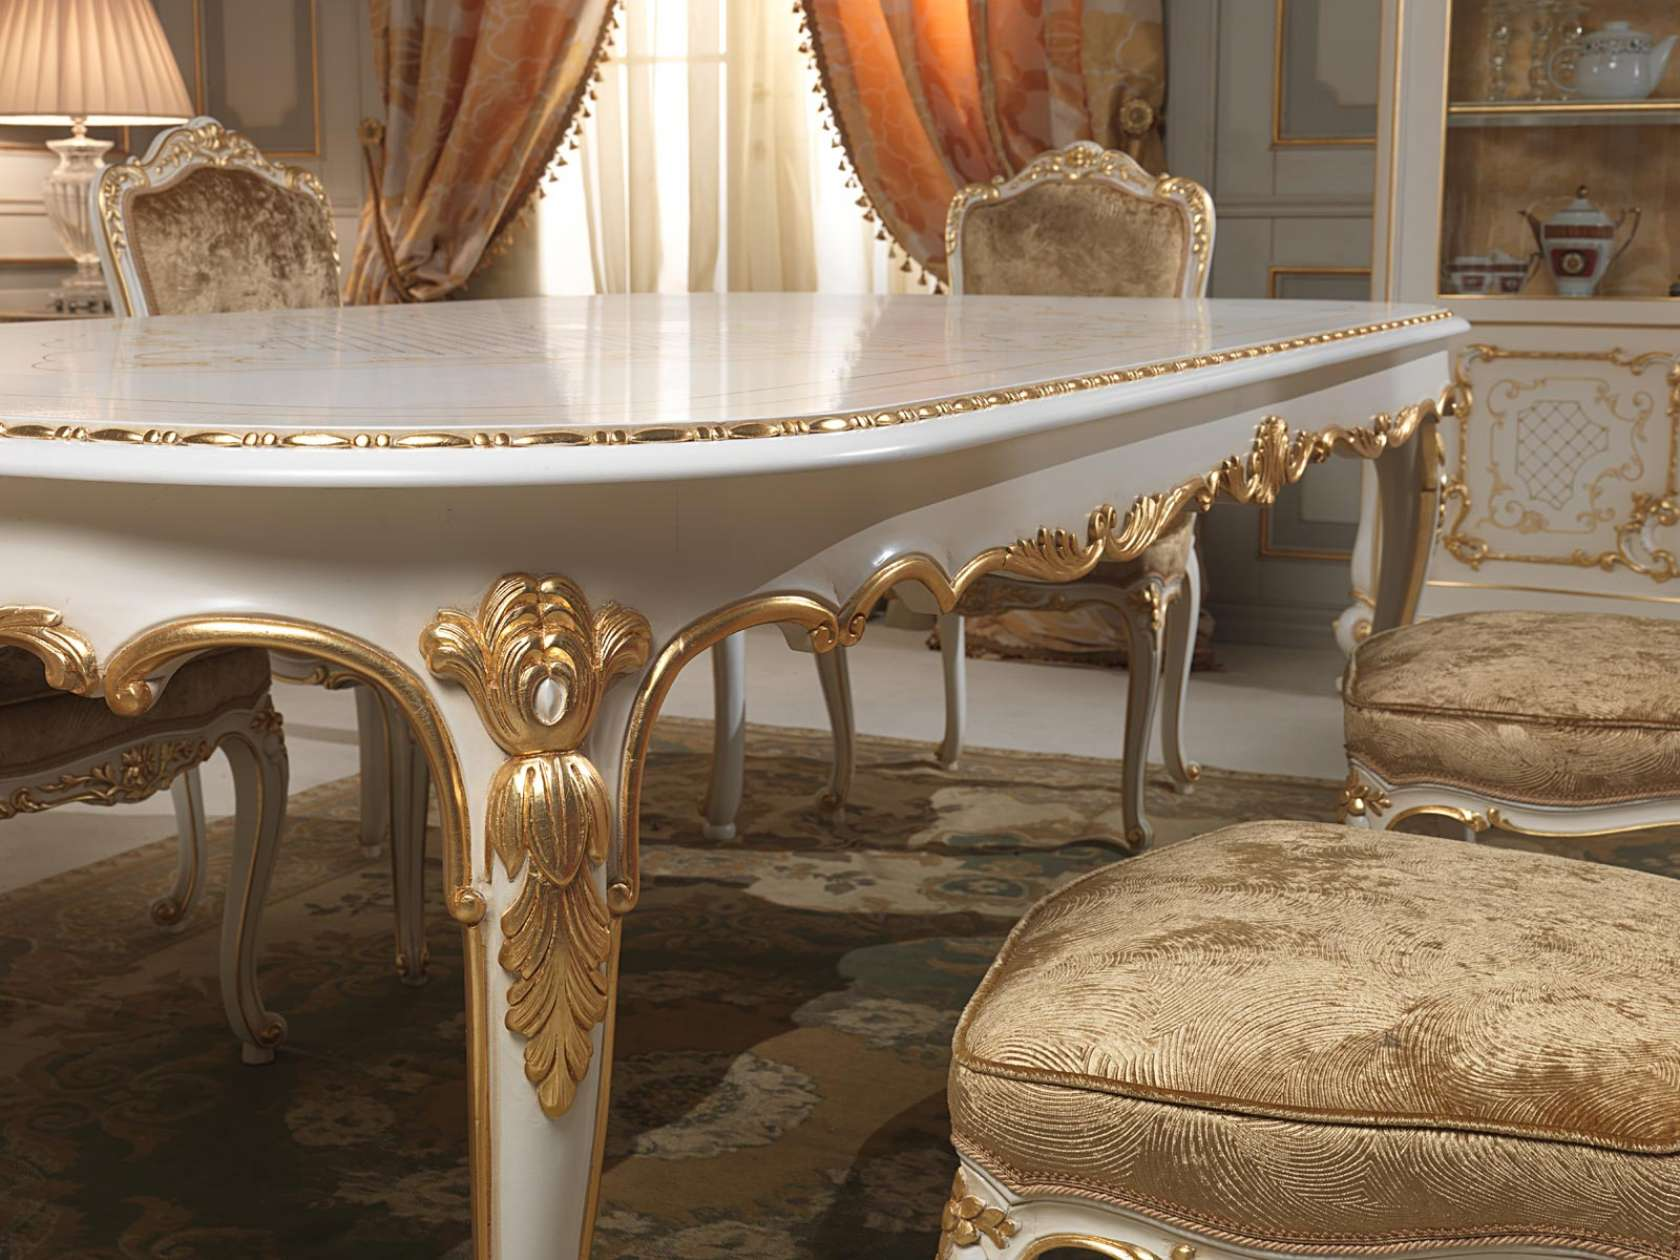 Elegant Dining Table In Louis XV Style, Particular Of The Carvings